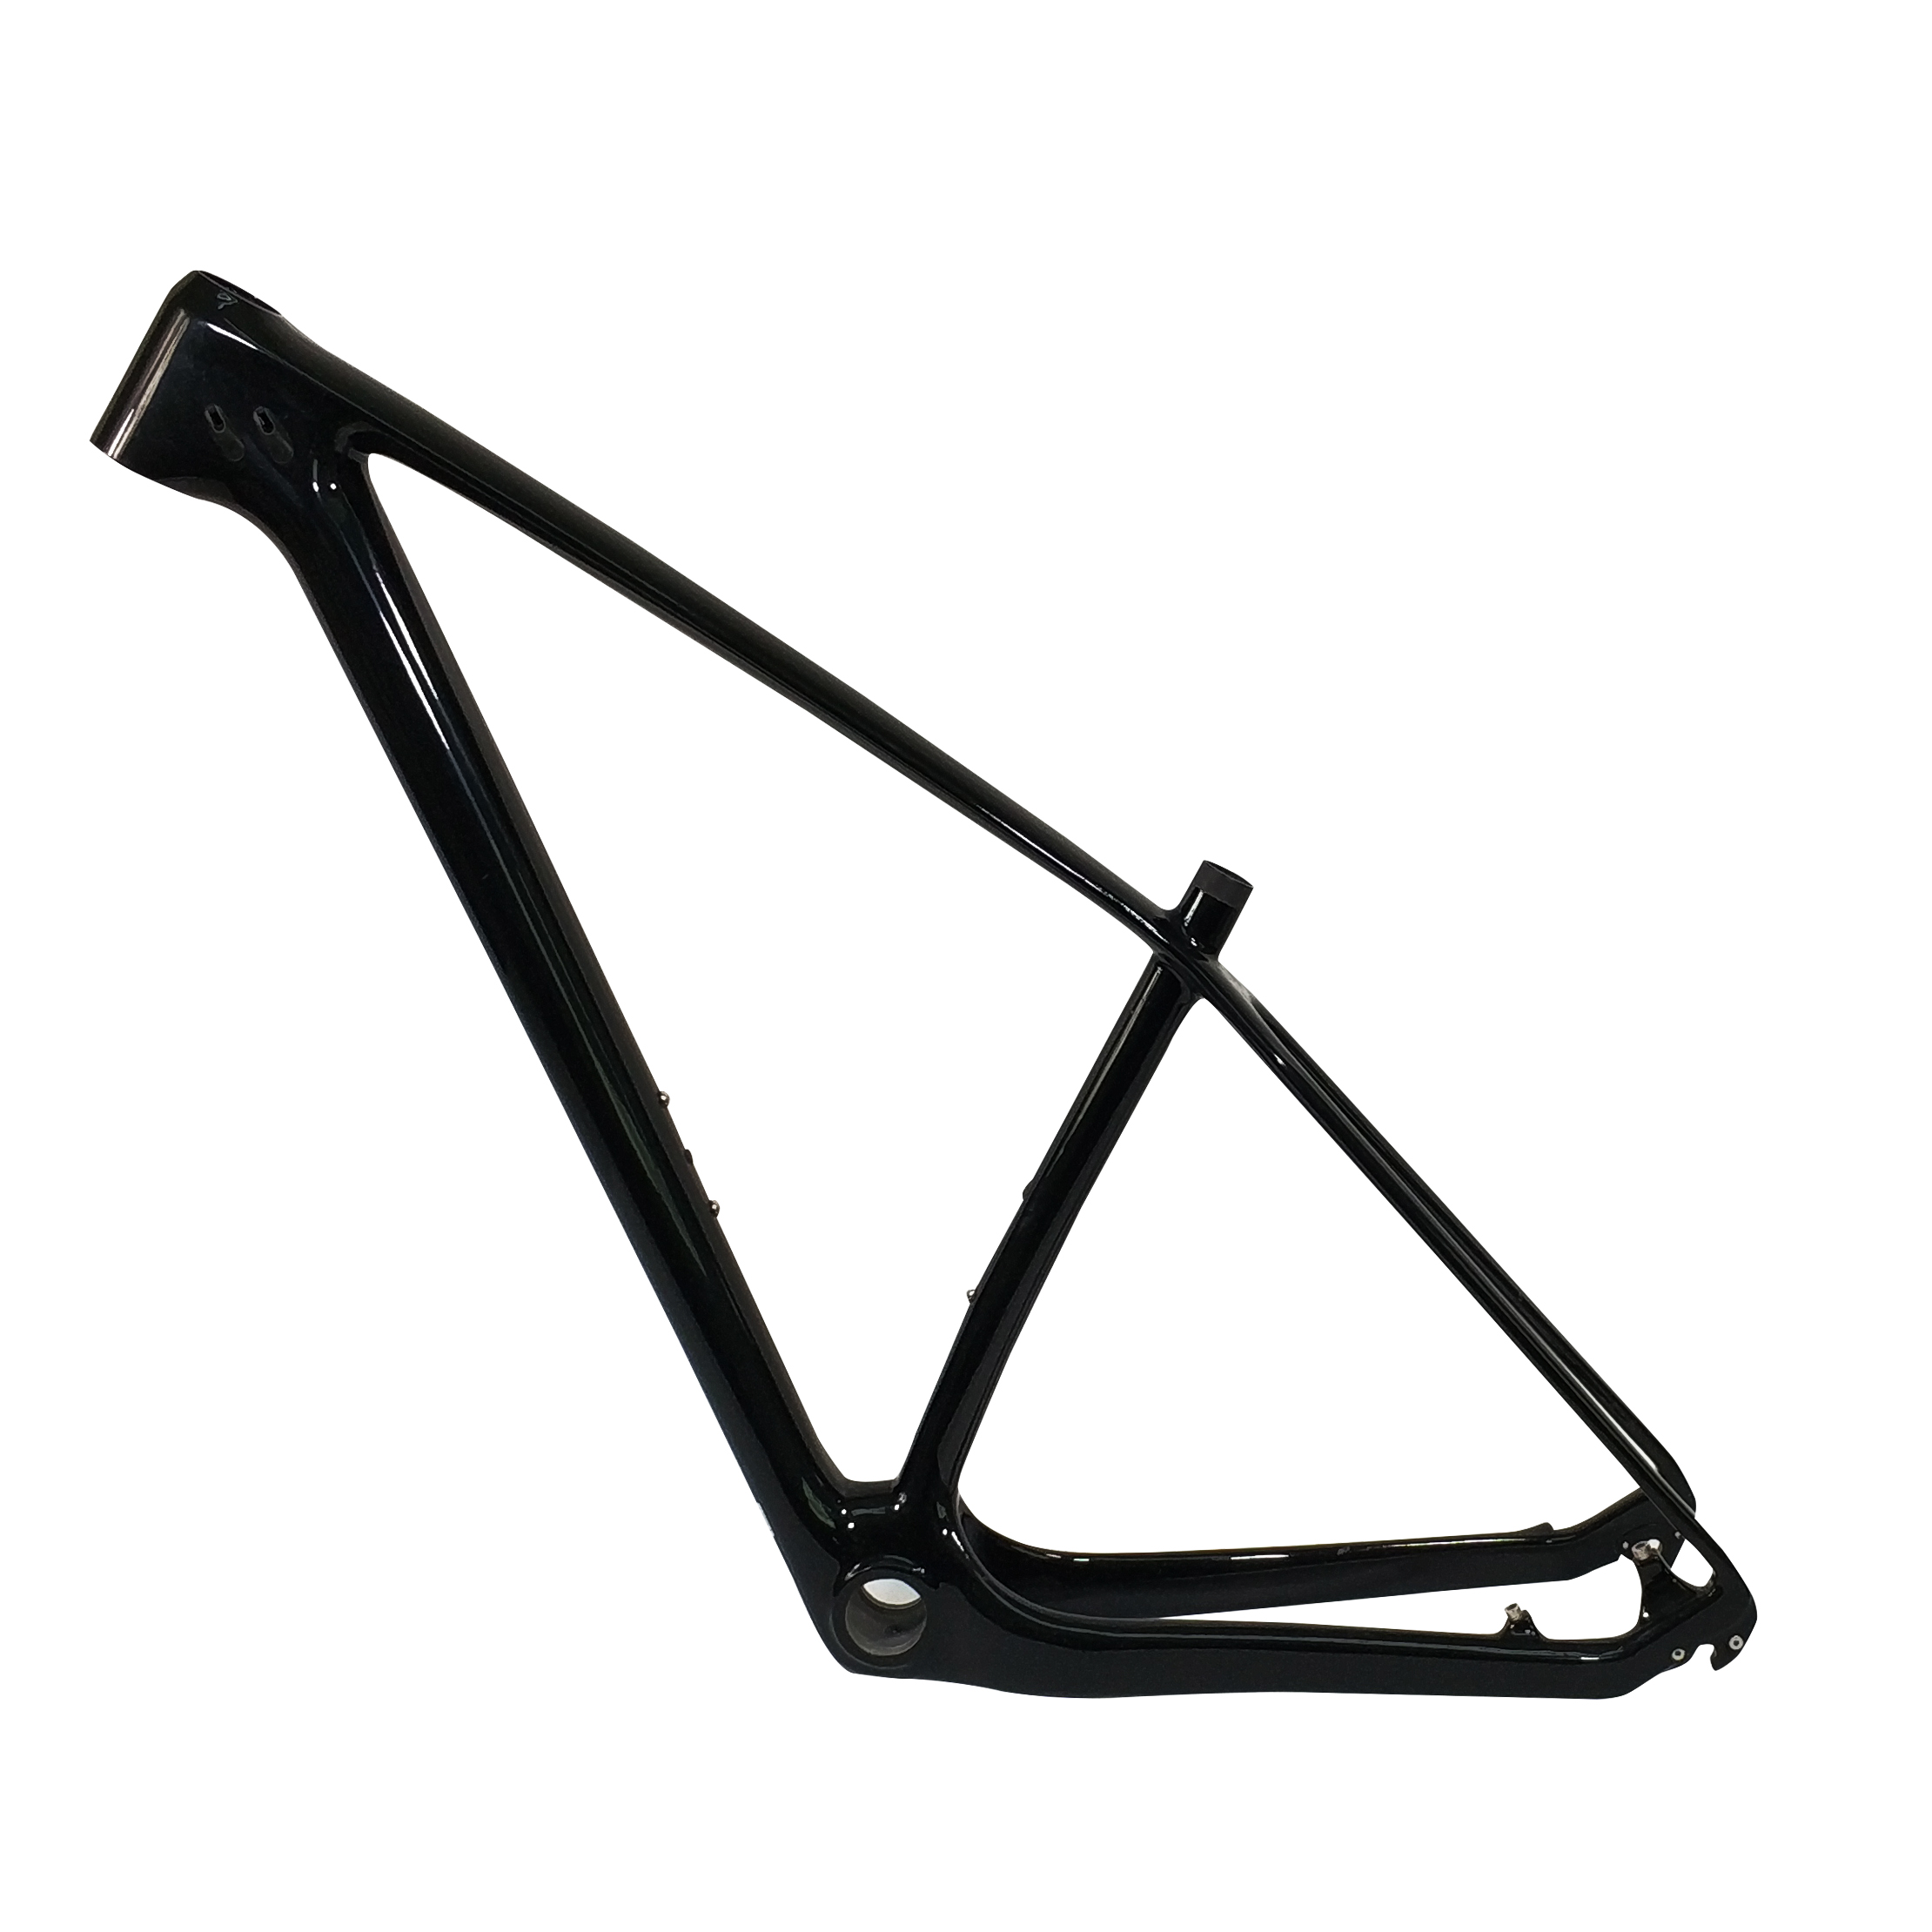 Mountain-Bikes-Frame Carbon-Bike Mtb 29er China Cheap T1000 UD 15-17 title=